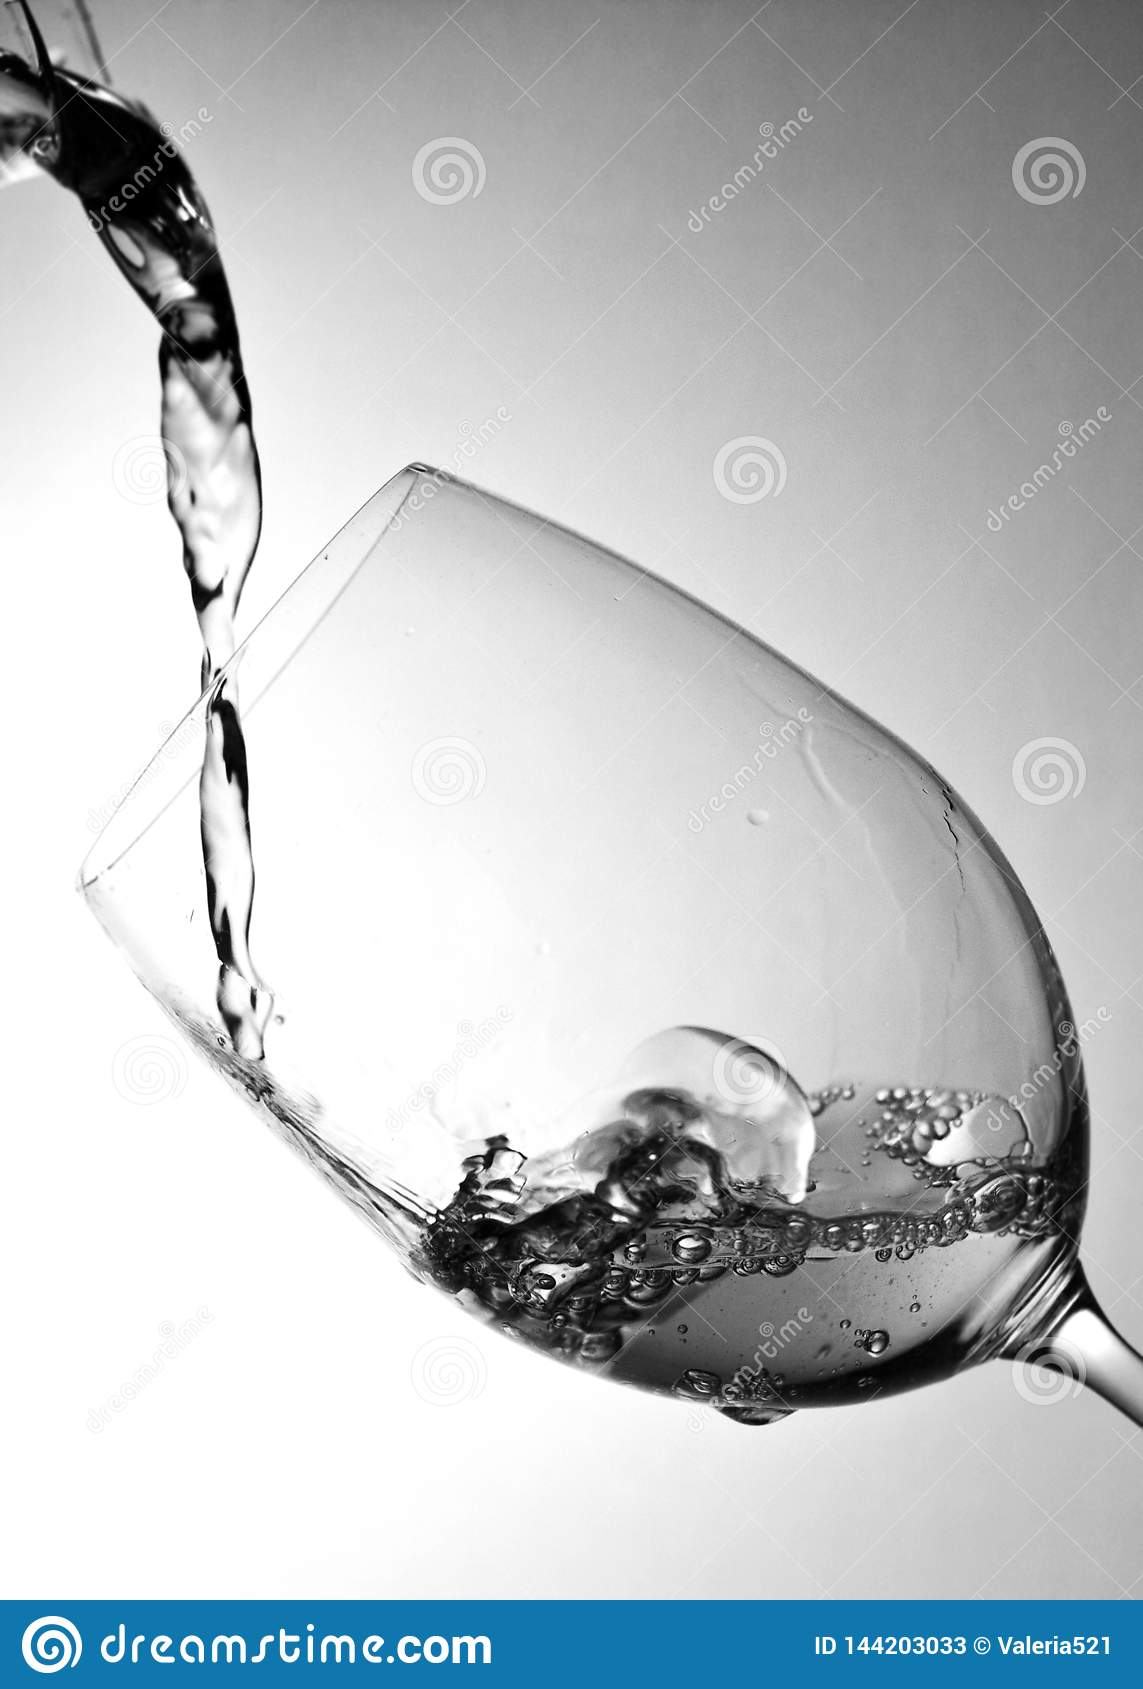 Water splashing into the glass on a gray background